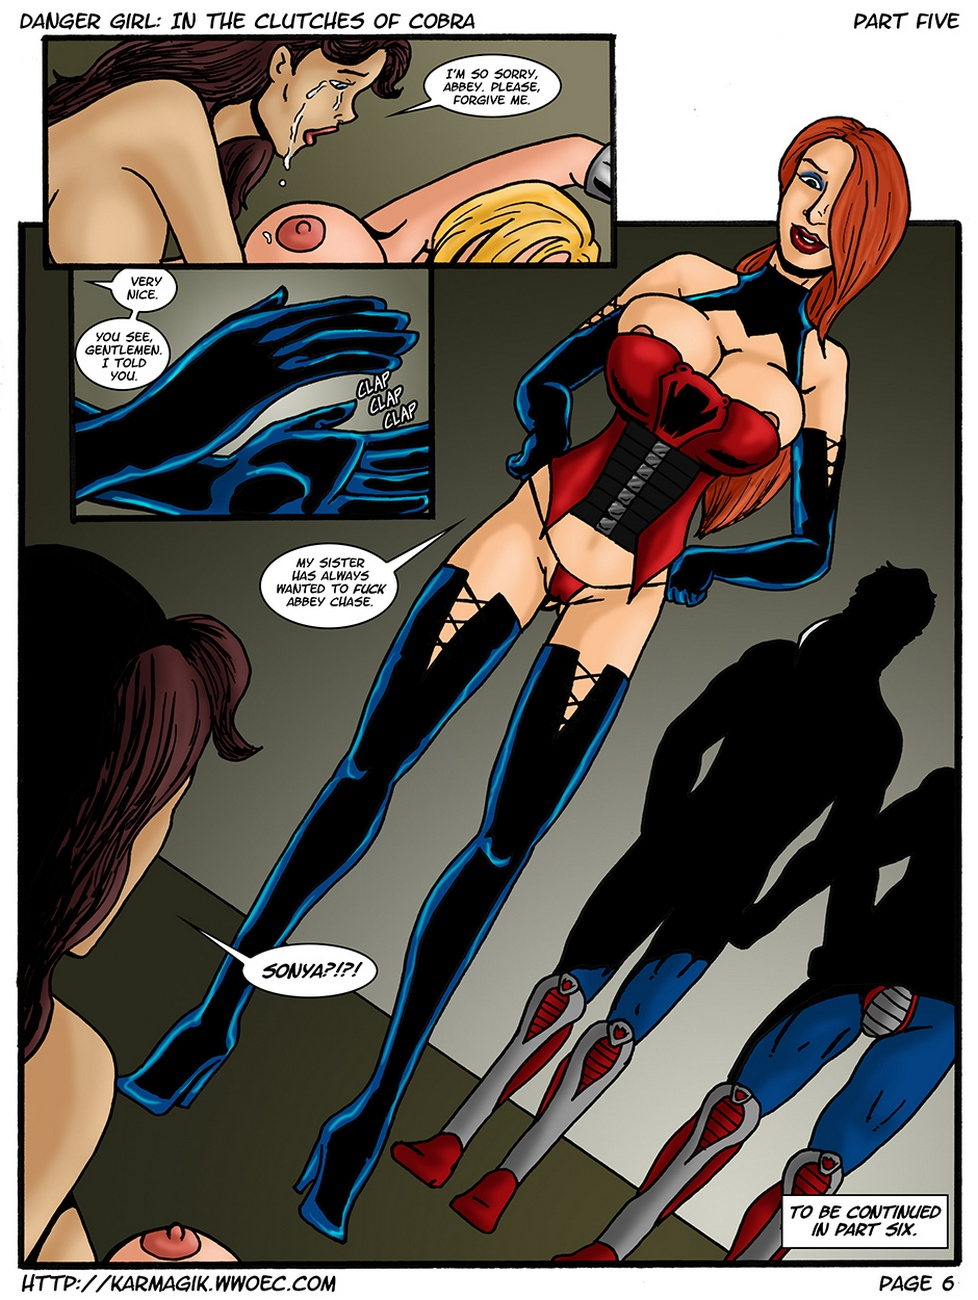 Danger-Girl-In-The-Clutches-Of-Cobra-5 6 free sex comic